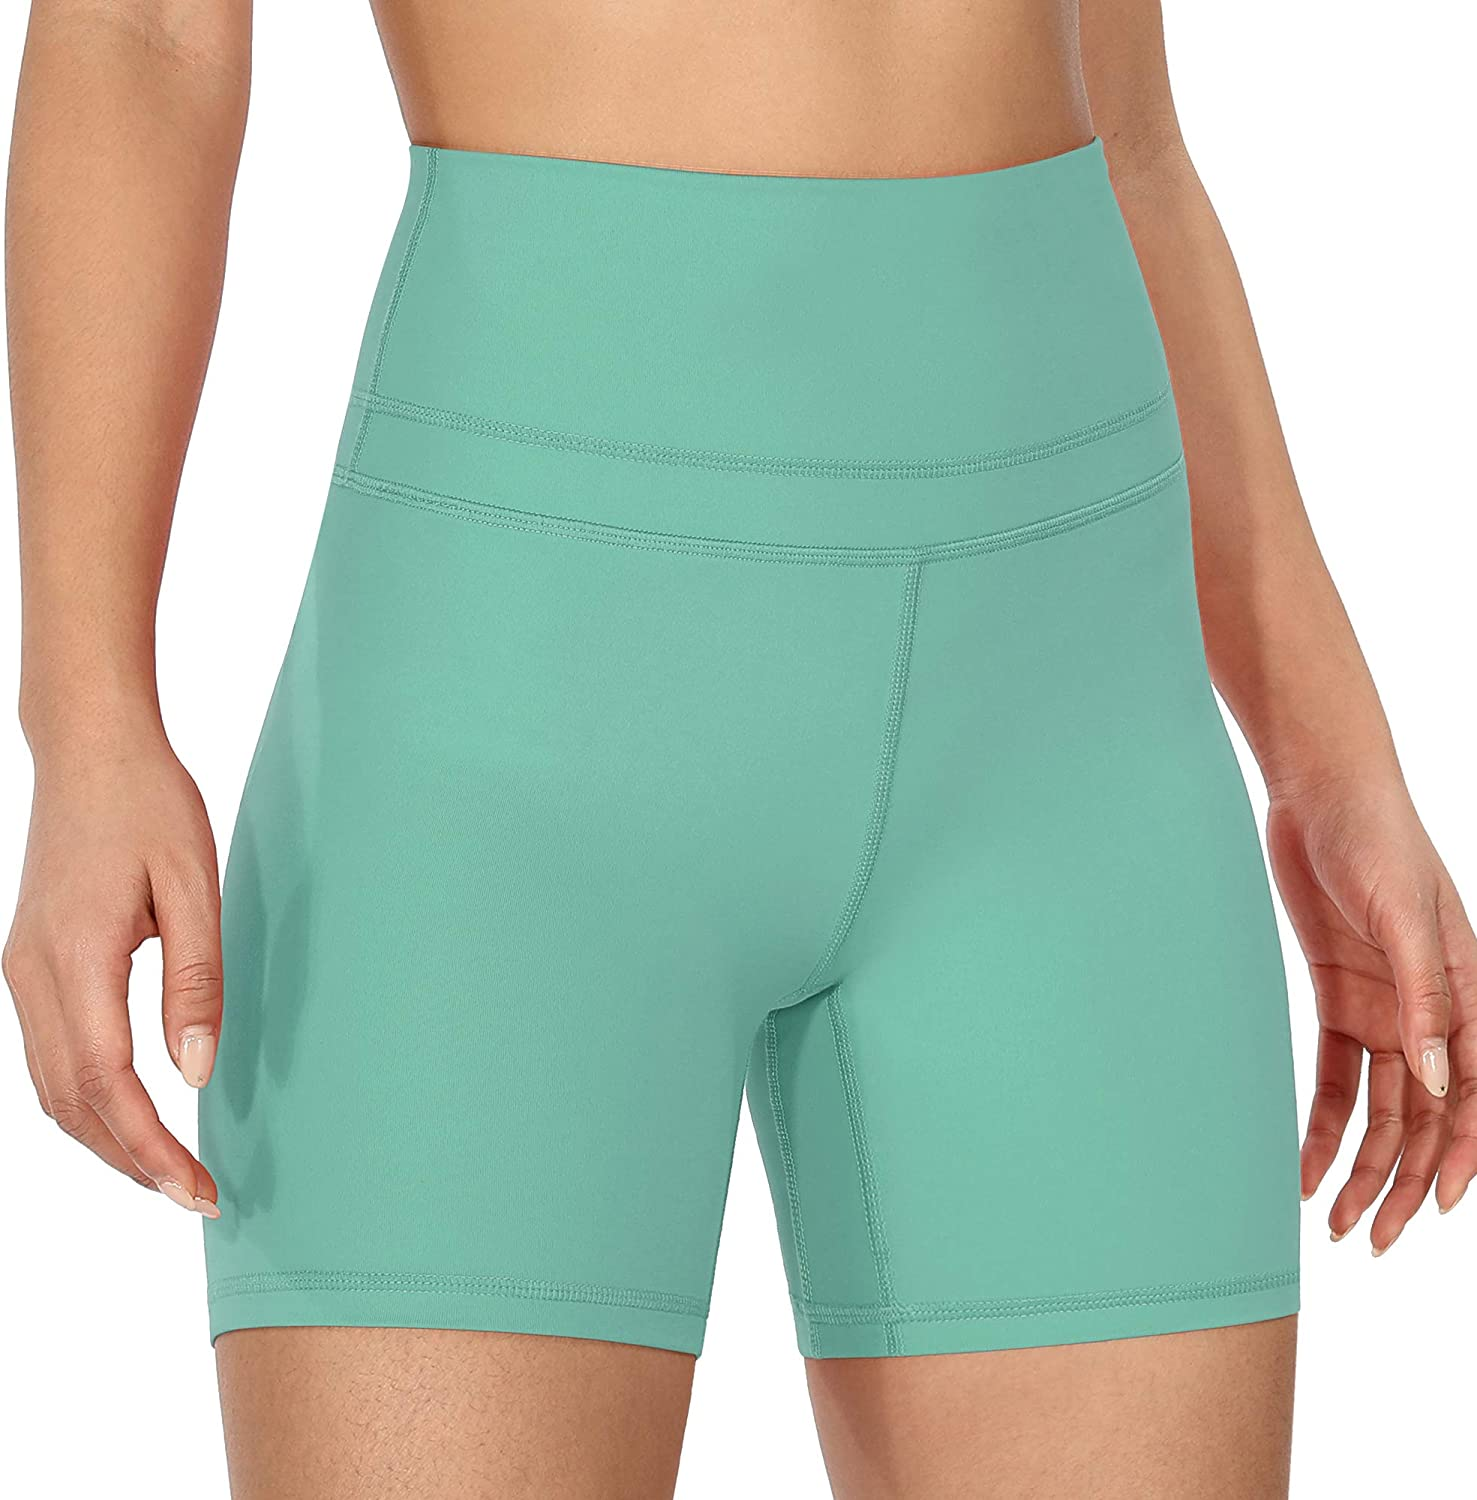 ODODOS Womens High-Rise Yoga Shorts with Inner Pocket Workout Running Biker Exercise Shorts-Inseam 5